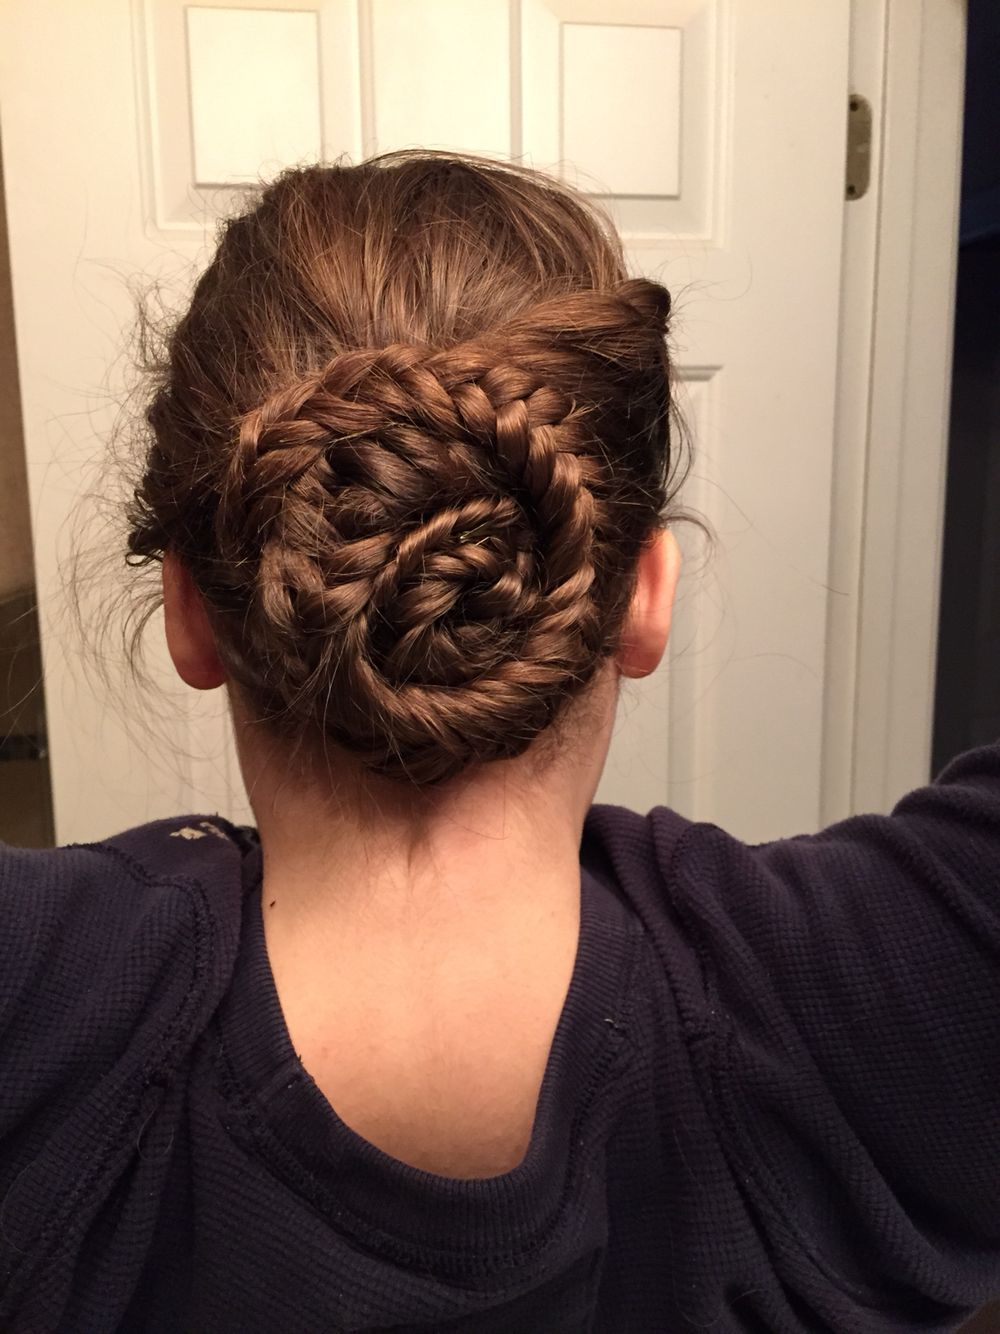 Could be a little tighter, but just some twists, fishtail and bobby pins. (: #hair #homecominghair #promhair #cute #hairstyle #hair